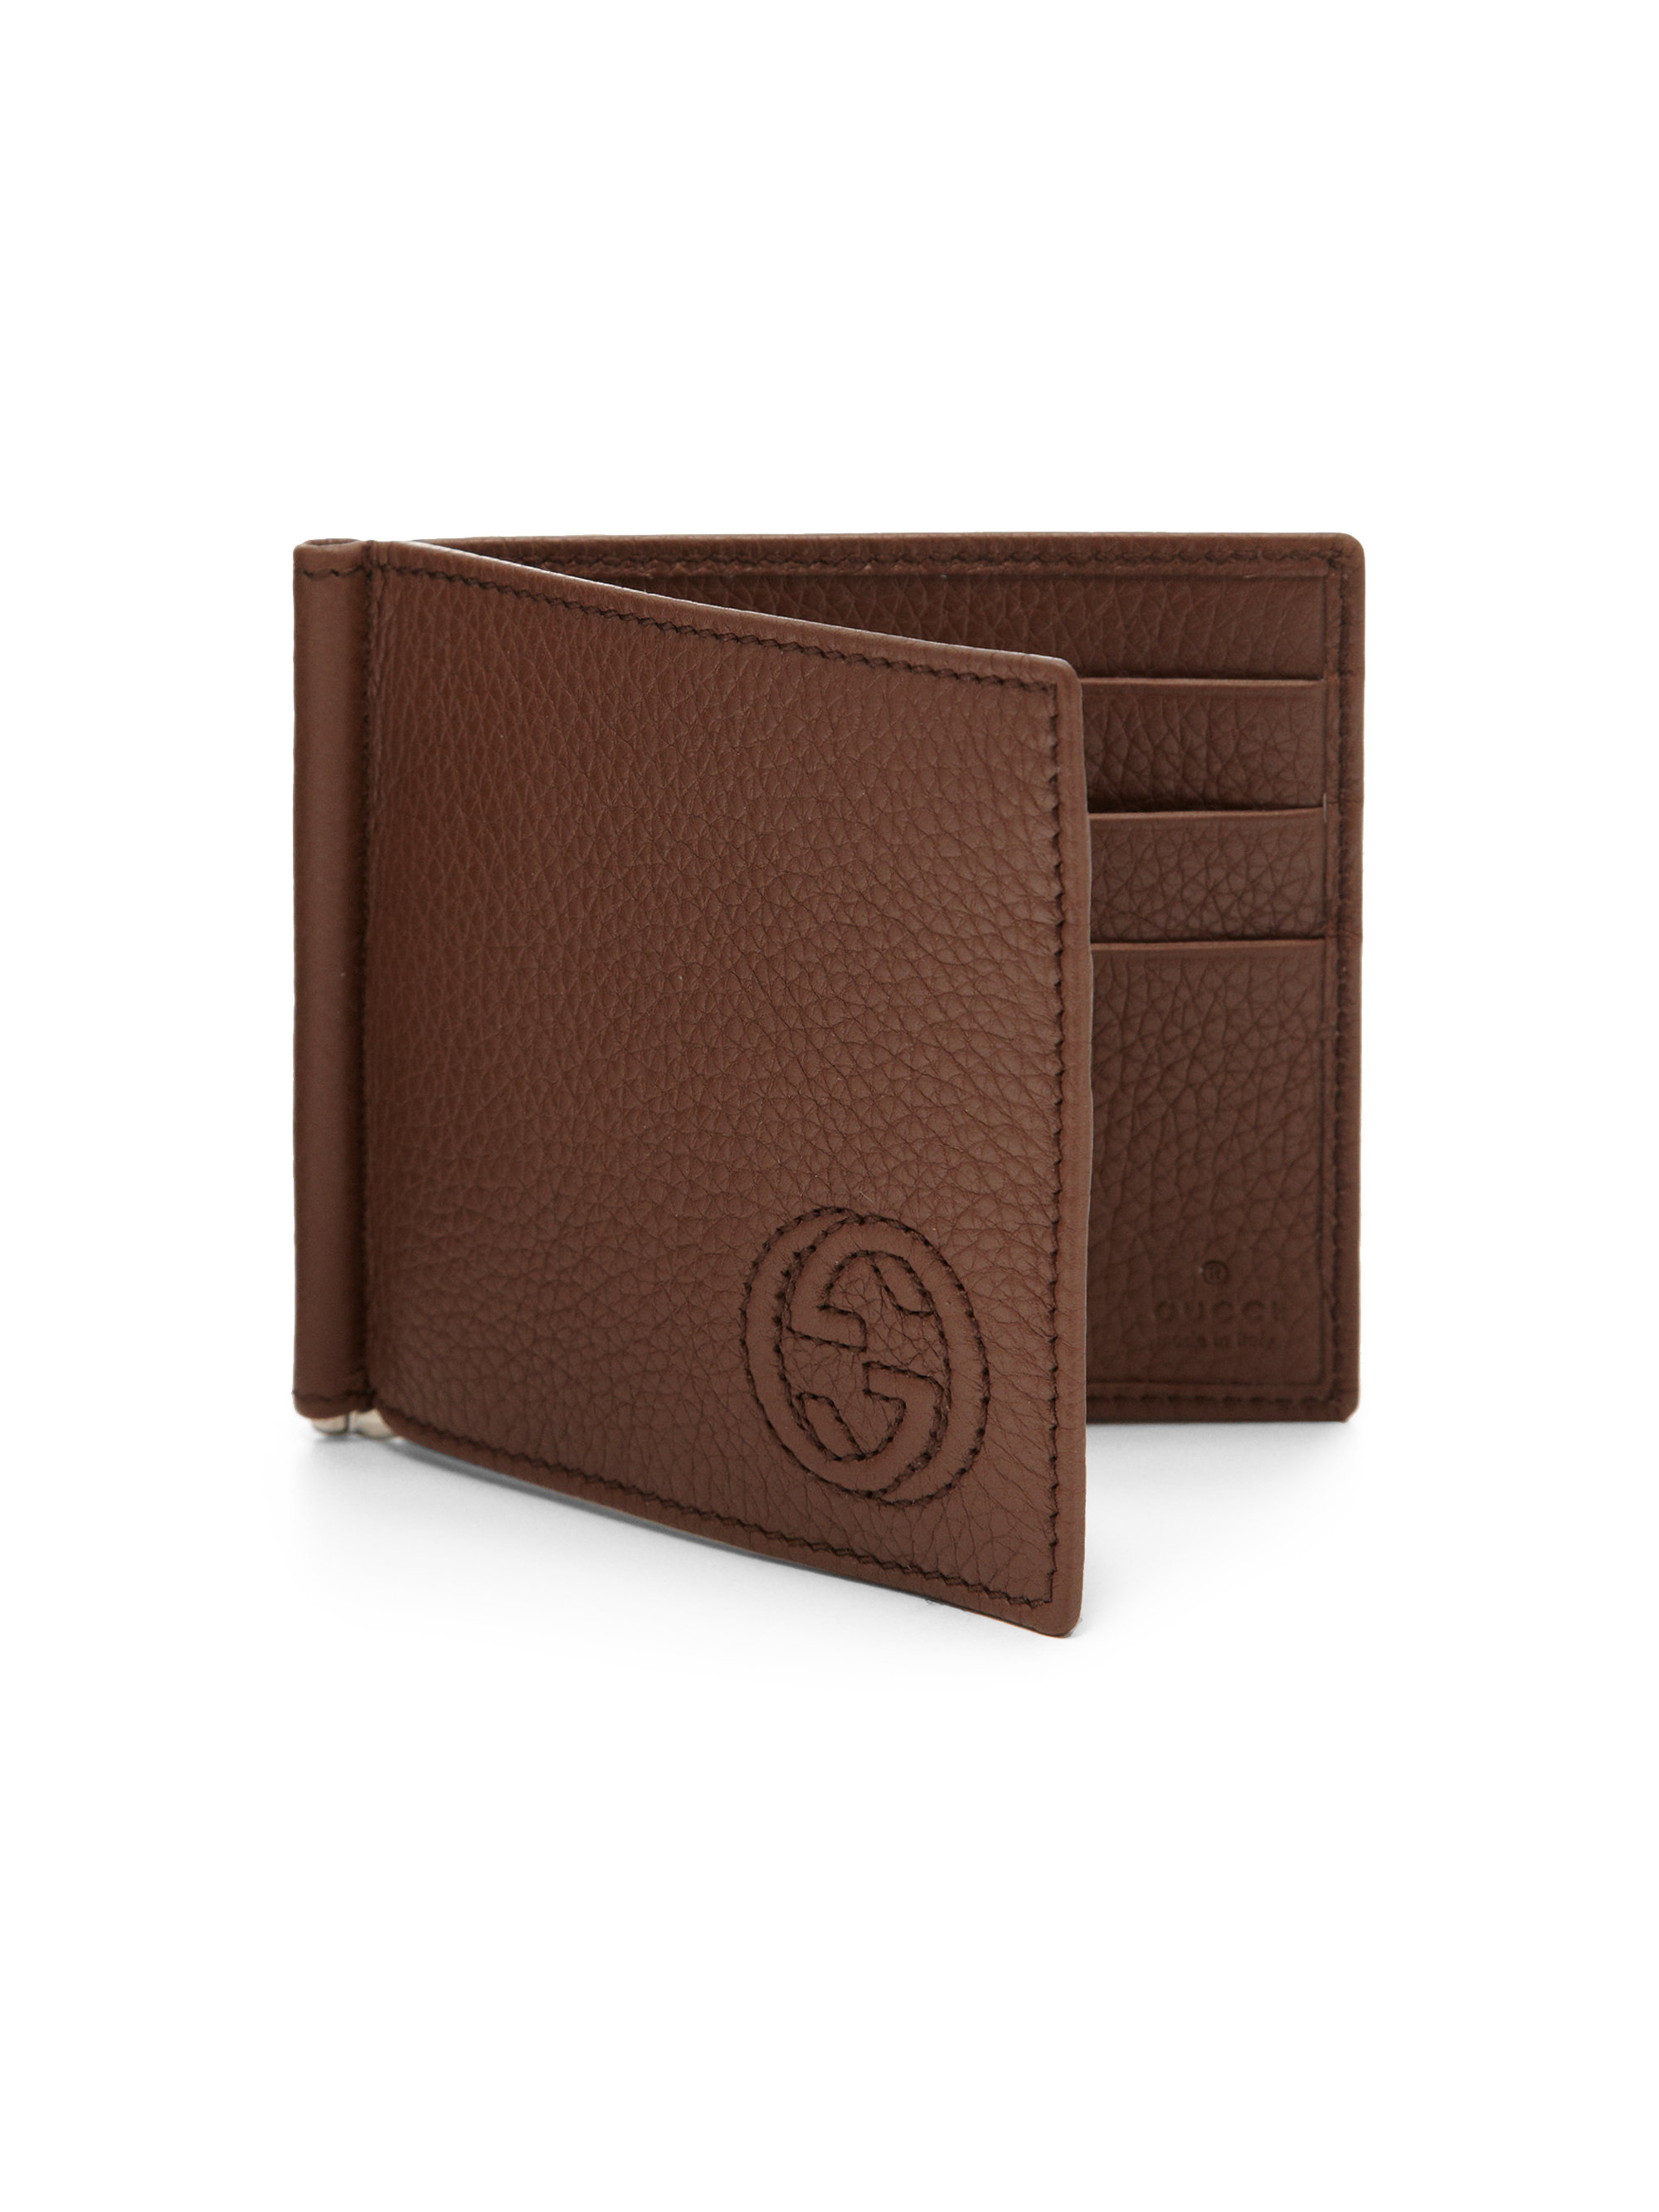 0b9955db2aa Lyst - Gucci Soho Leather Money Clip Wallet in Brown for Men